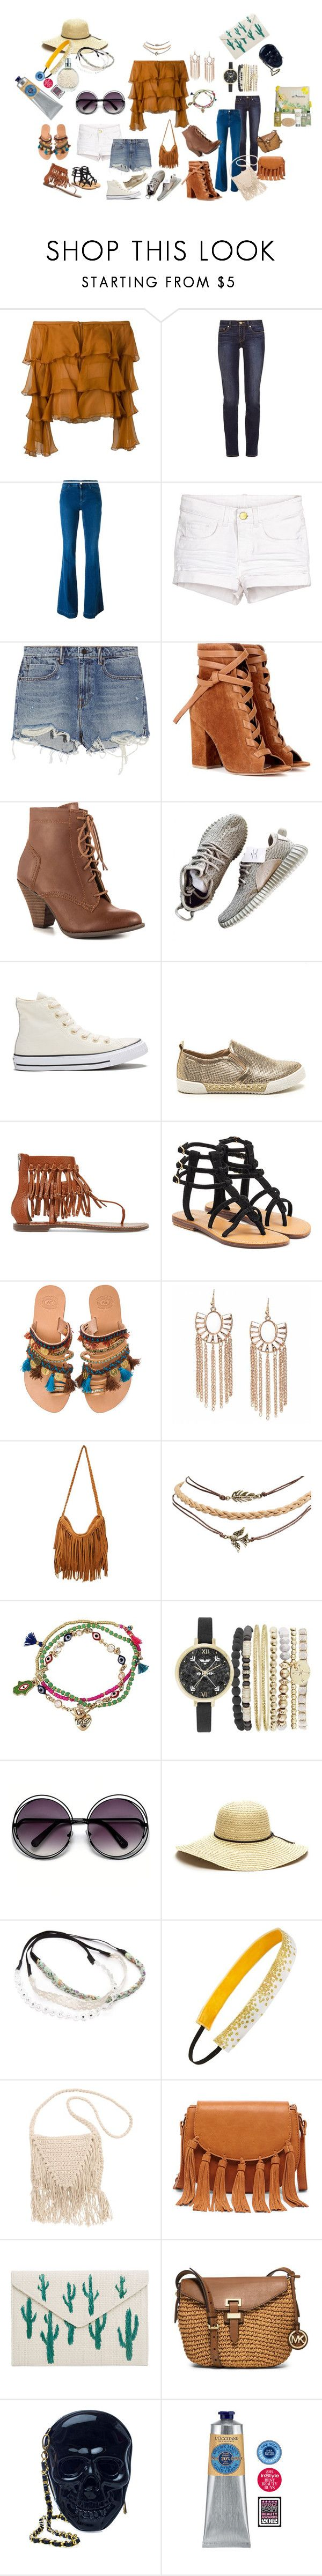 """feel 1970"" by veronic-s on Polyvore featuring Balmain, Tory Burch, STELLA McCARTNEY, Alexander Wang, Gianvito Rossi, Mojo Moxy, Converse, Sam Edelman, Mystique and Elina Linardaki"